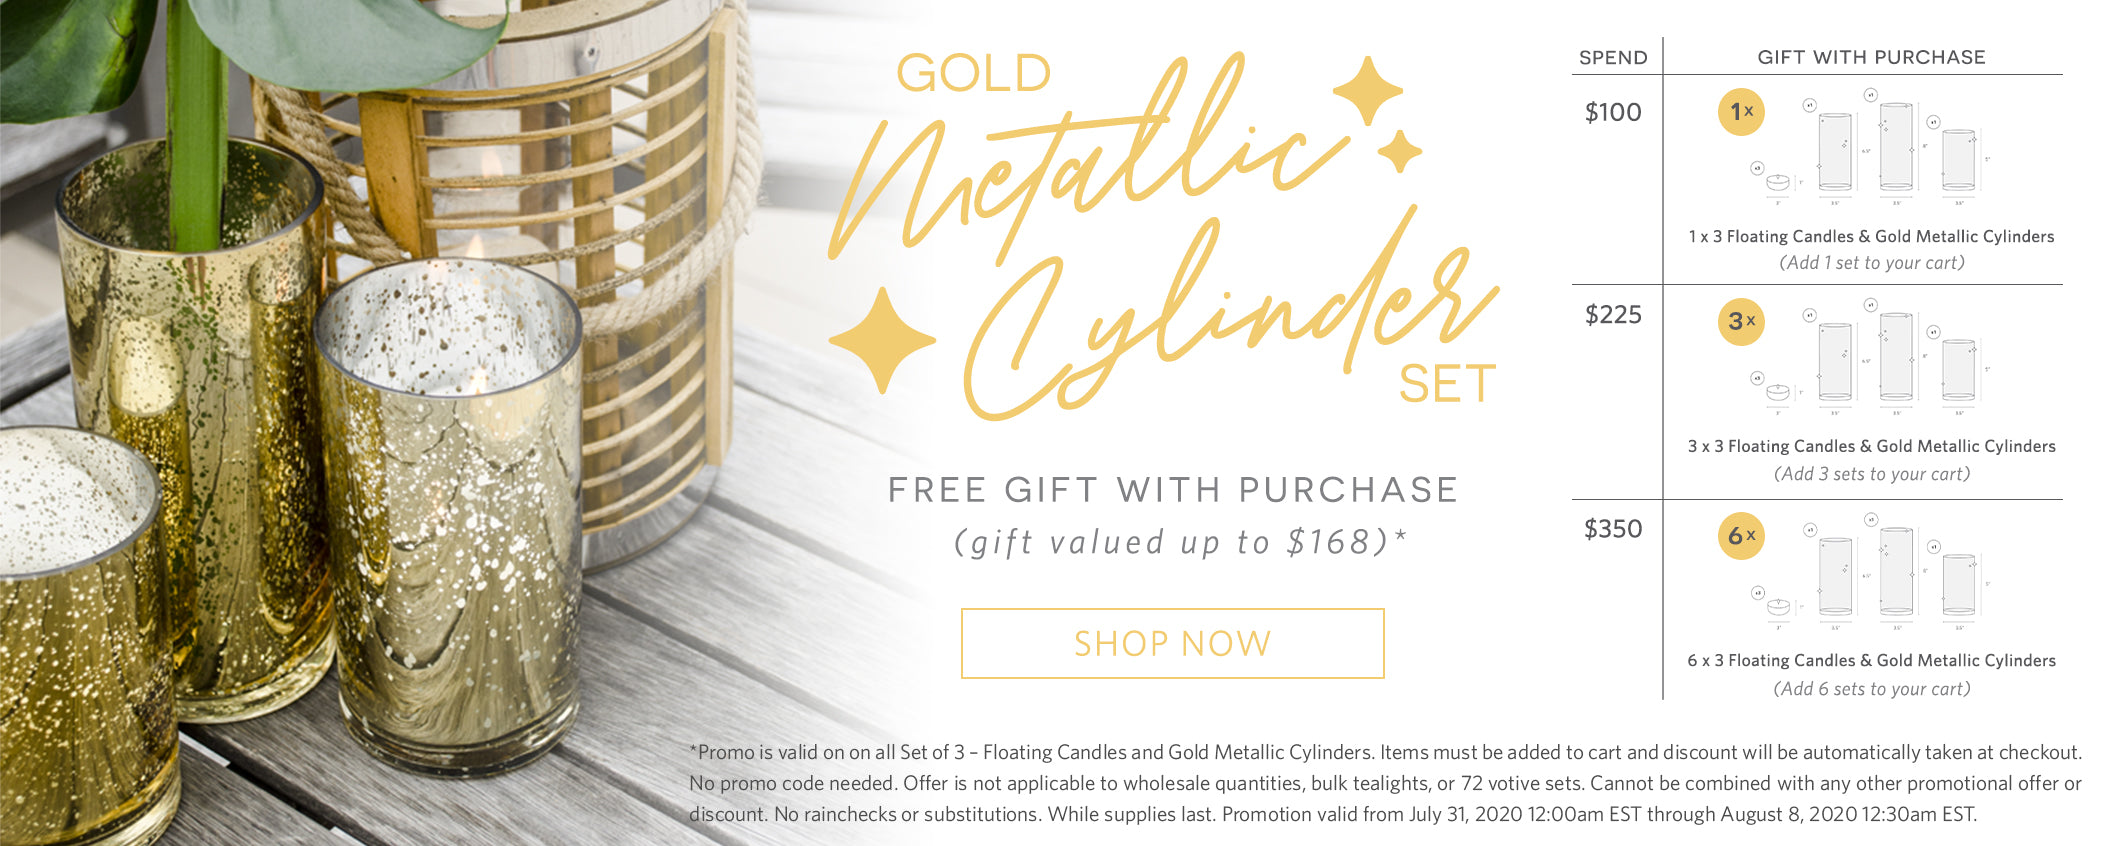 Gold Metallic Cylinder Set. Free Gift with Purchase (gift valued up to $168)*